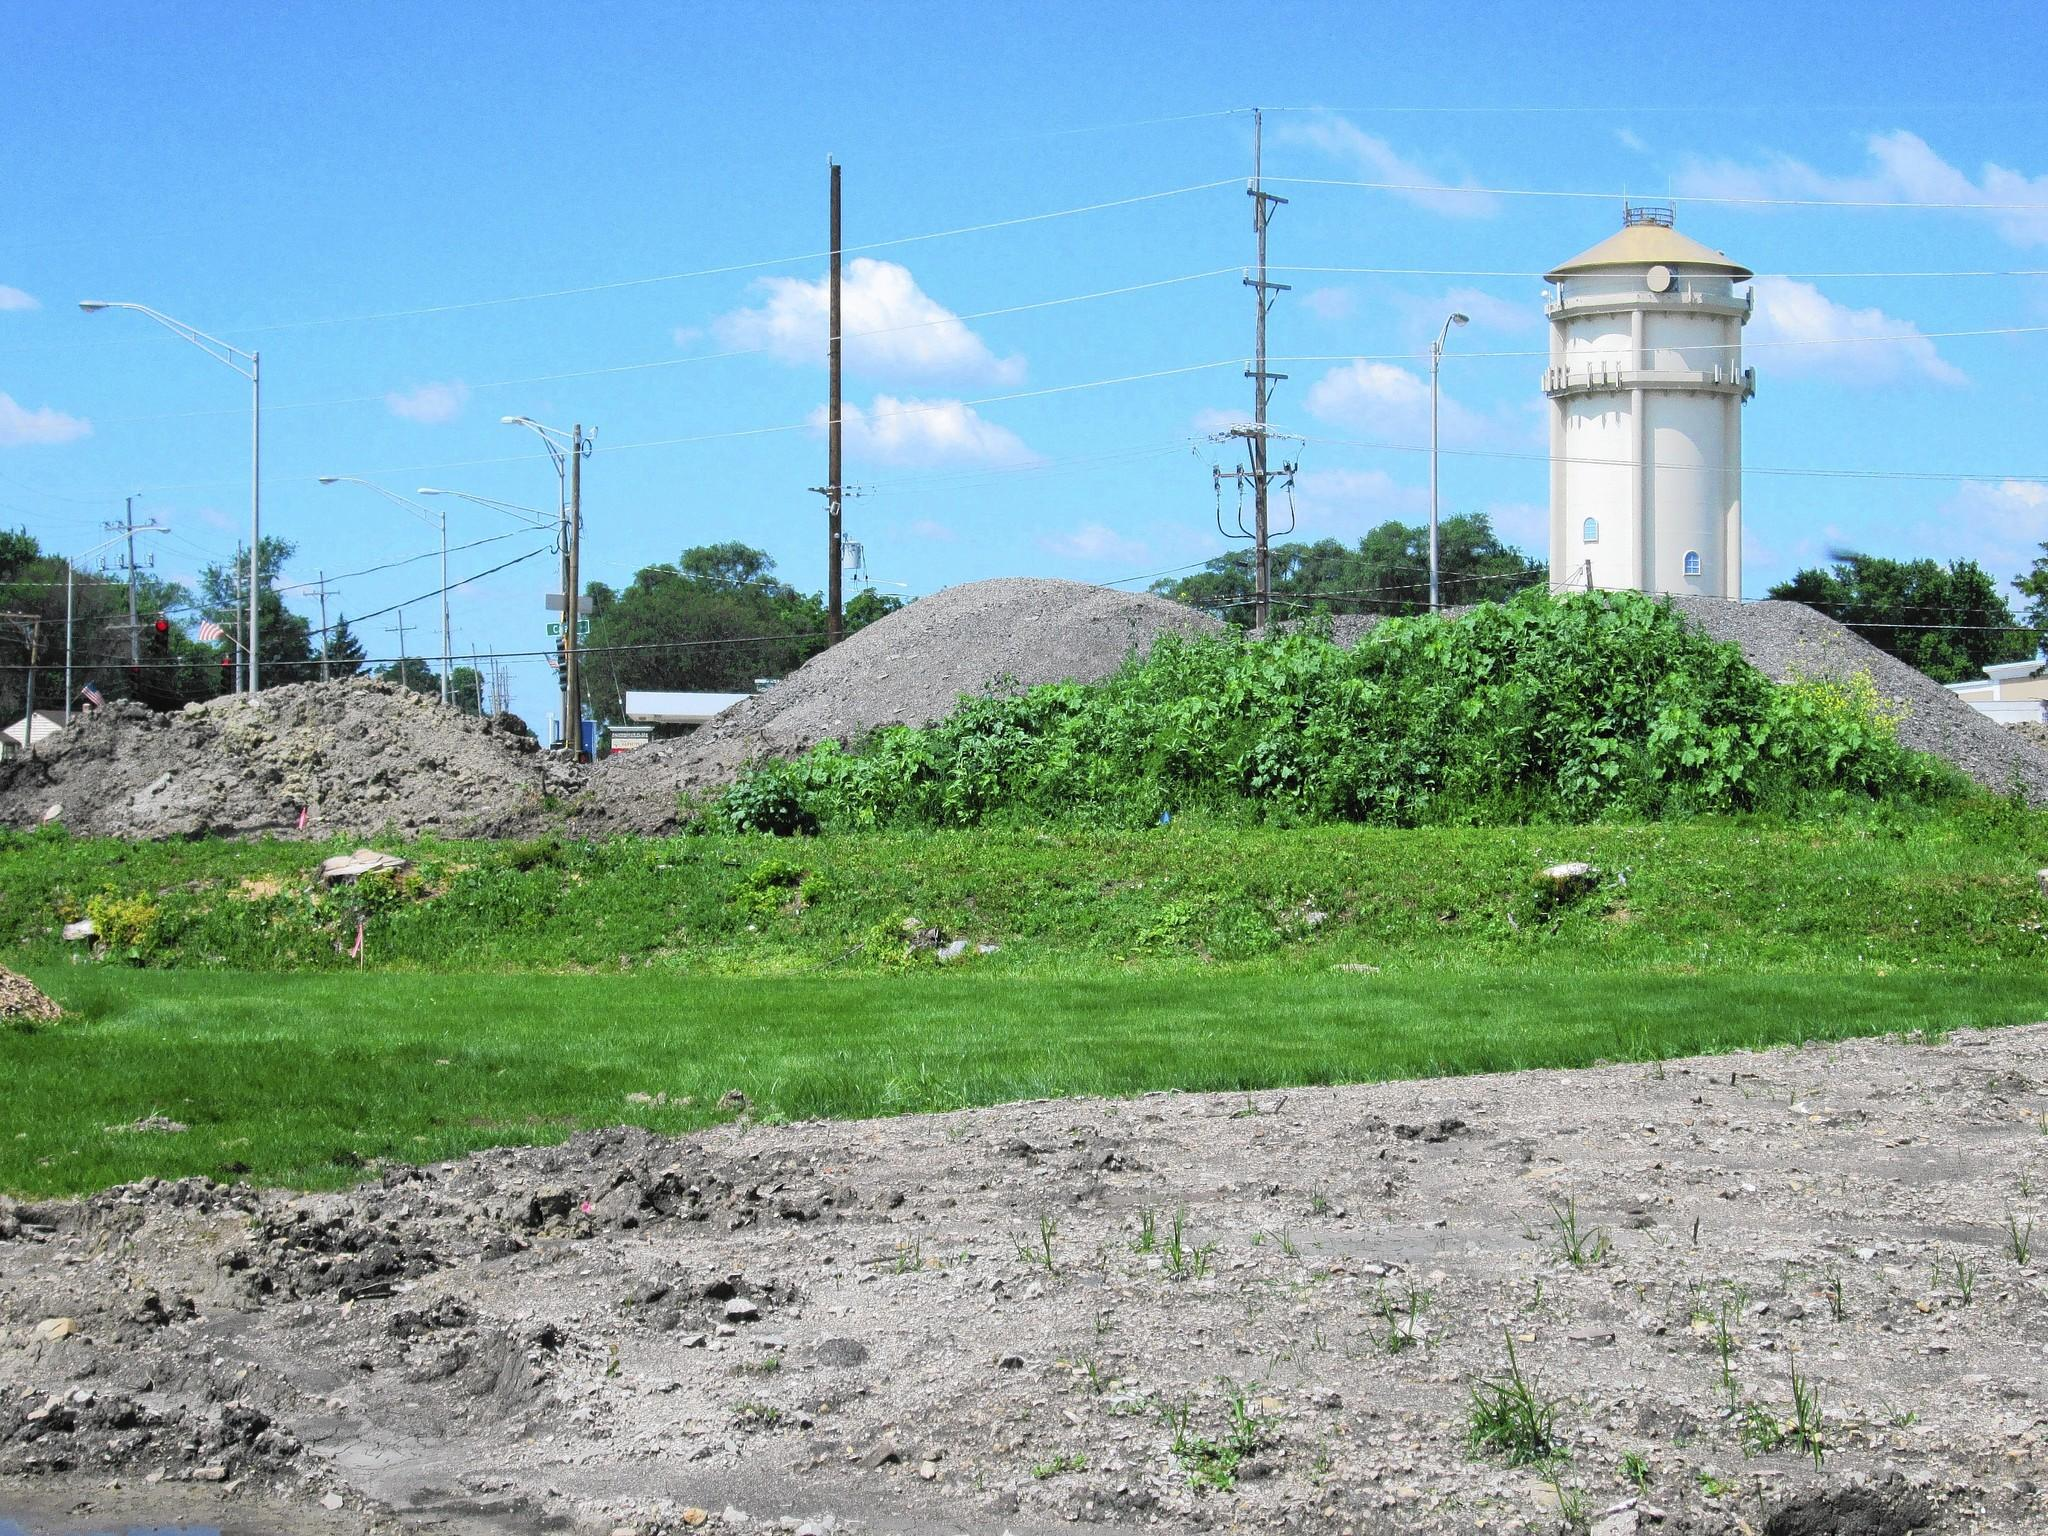 Dirt and gravel are currently mounded on the grounds of a proposed park near Cass Avenue and Plainfield Road in Darien.